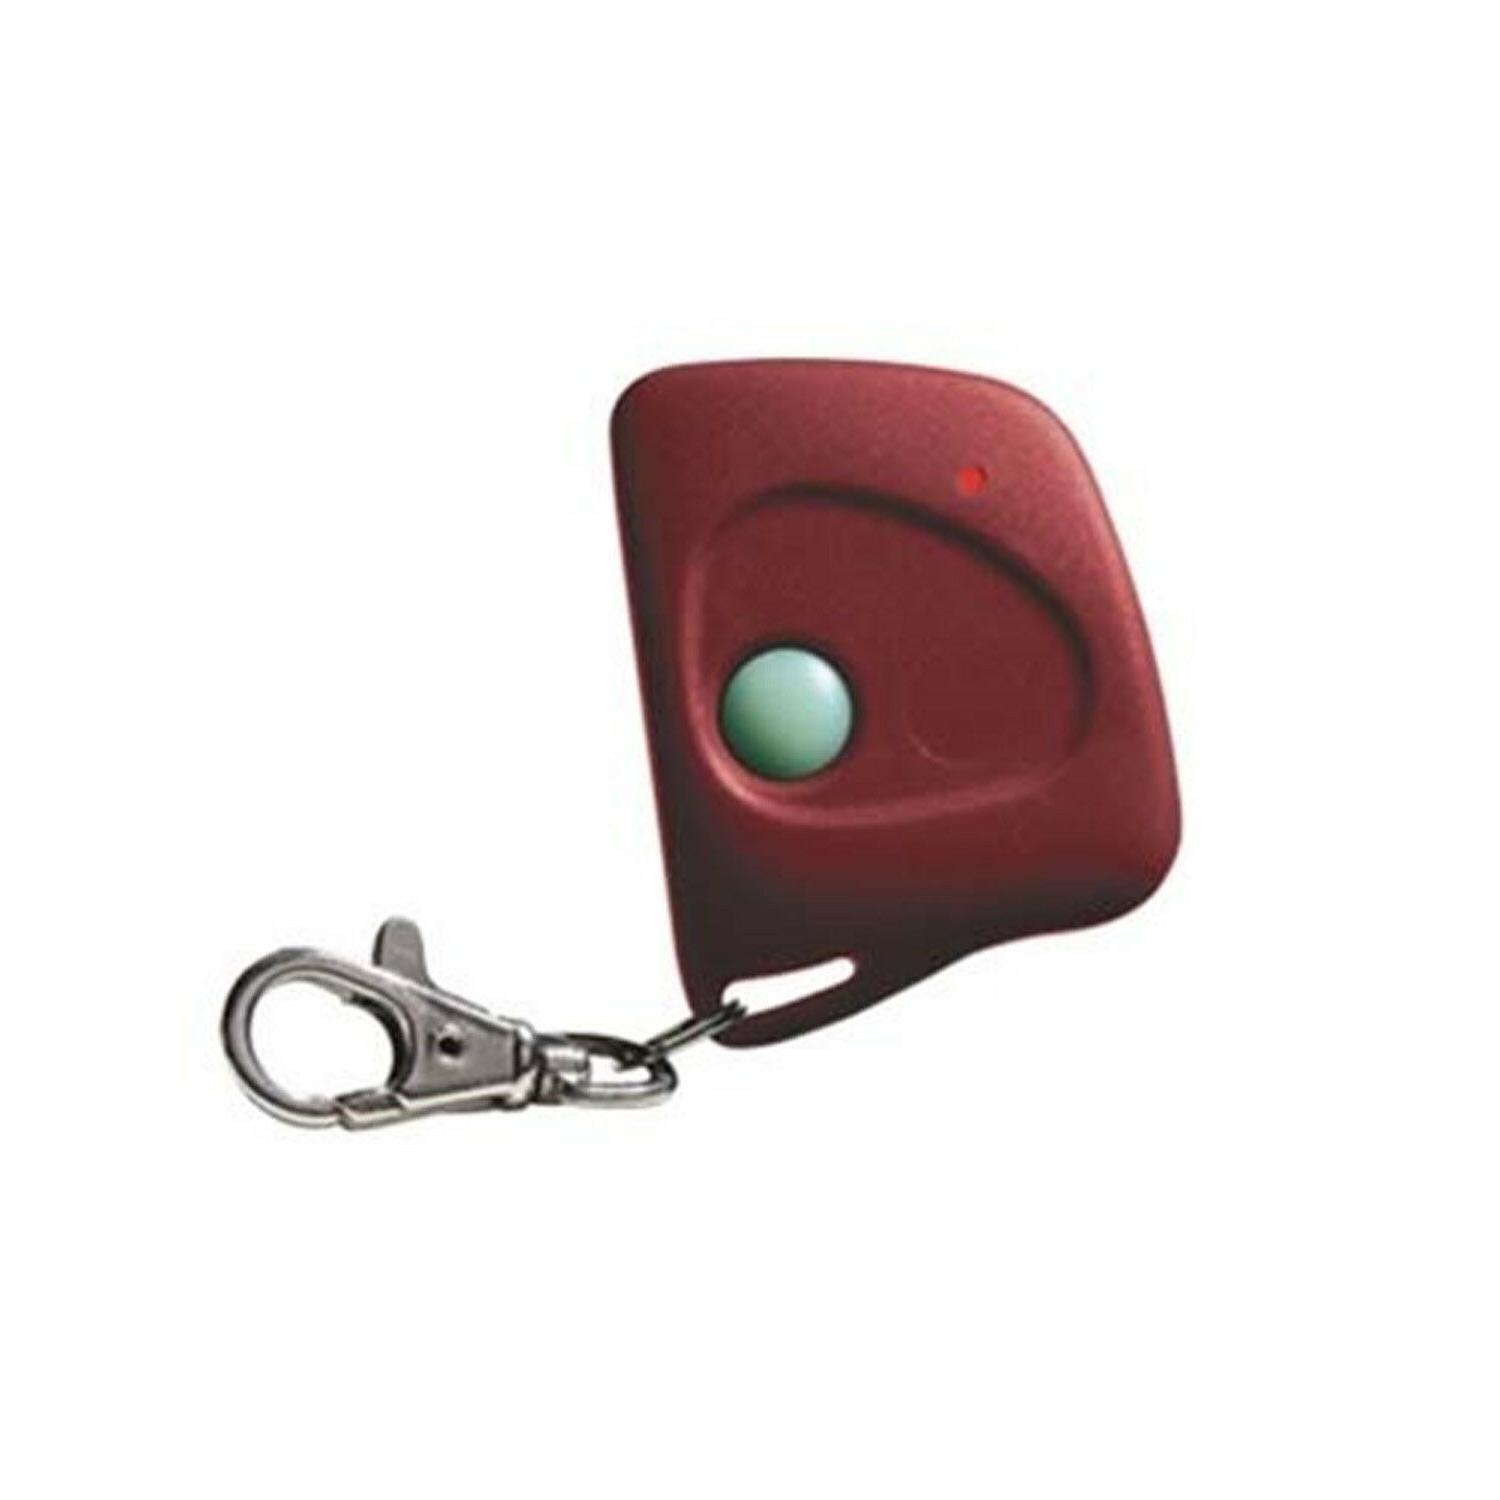 Transmitter Solutions Firefly 433TSD21K Garage Door Opener R